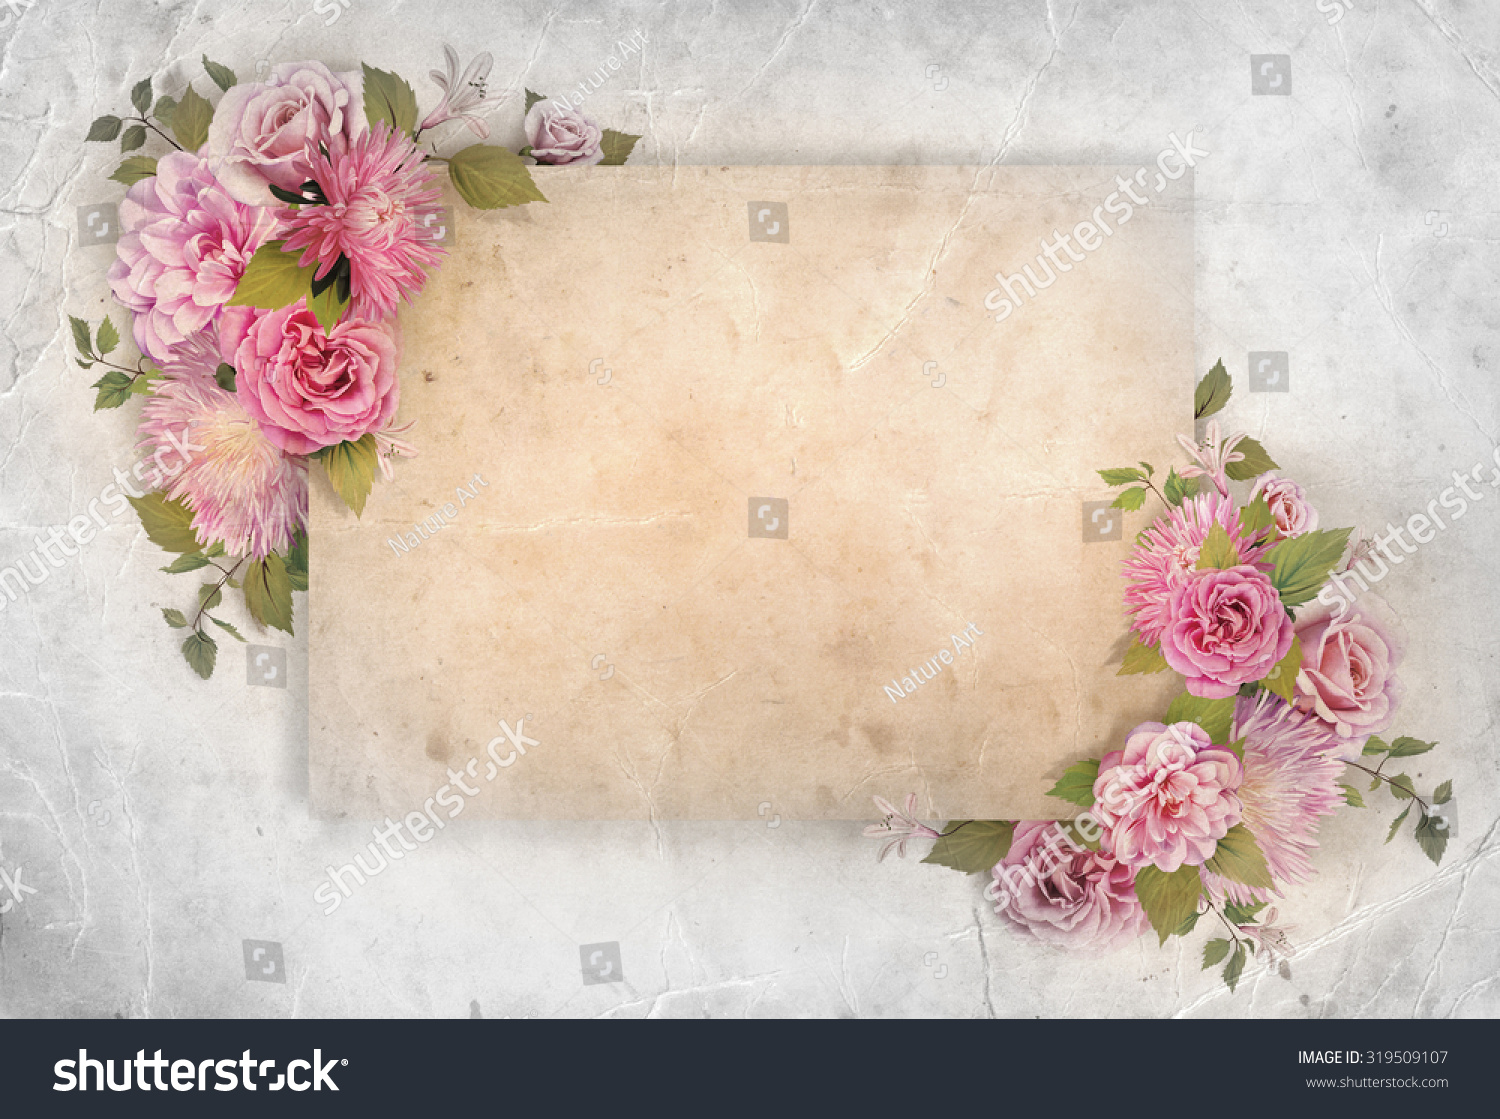 Wedding Vintage Romantic Background With Roses Camellia Flowers Green Leaves And Striped Light Hipster